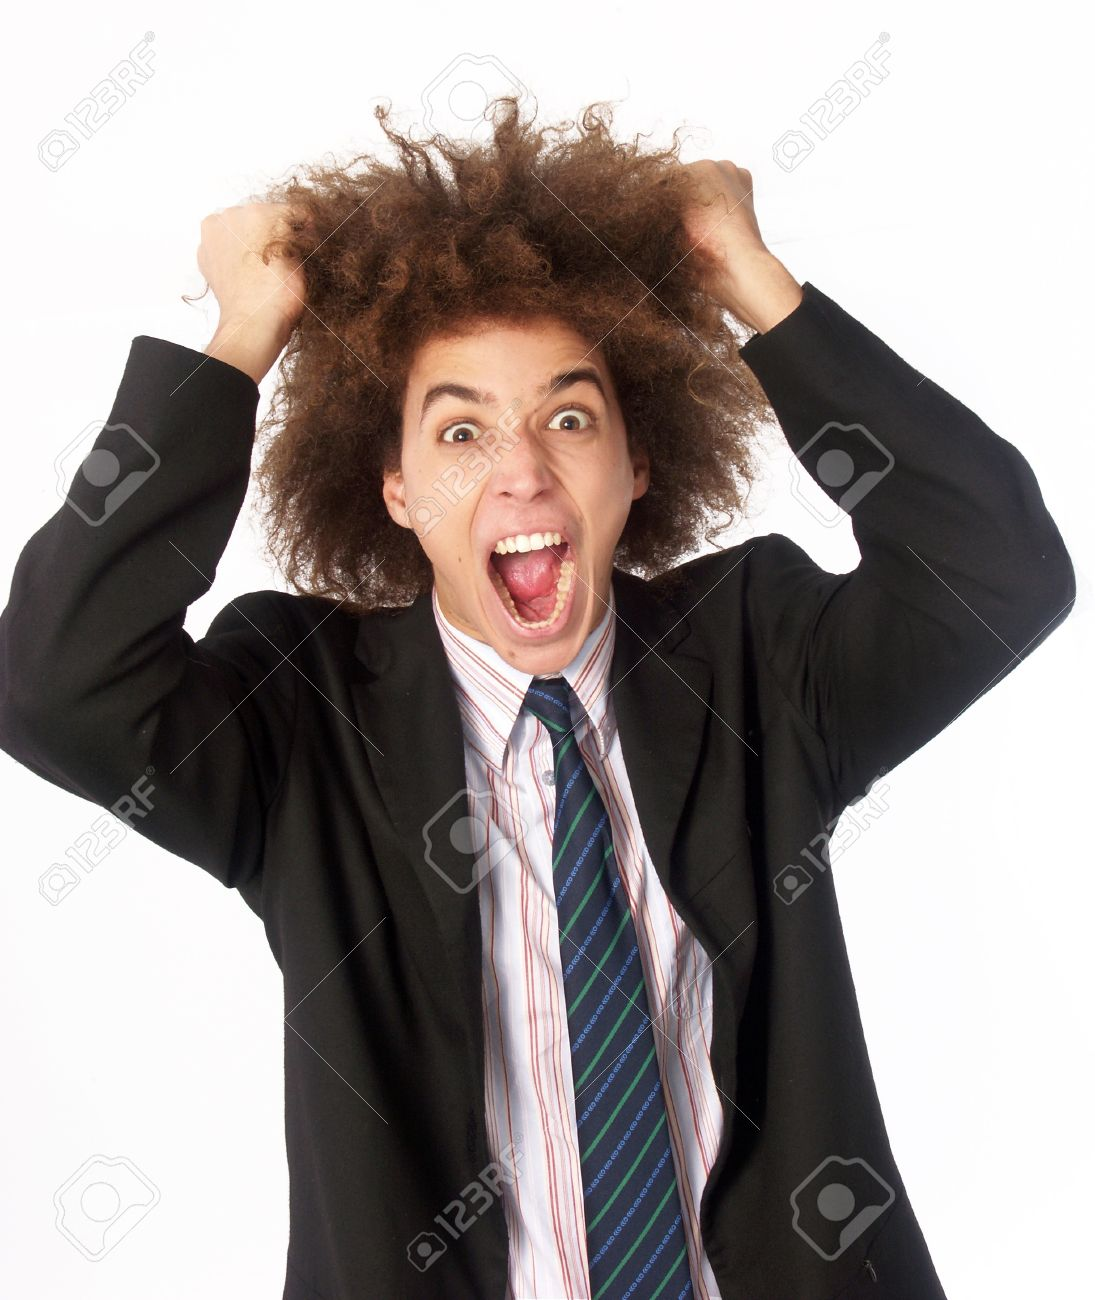 Businessman With Afro Hairstyle Pulling His Hair On White Background Stock  Photo   22388136